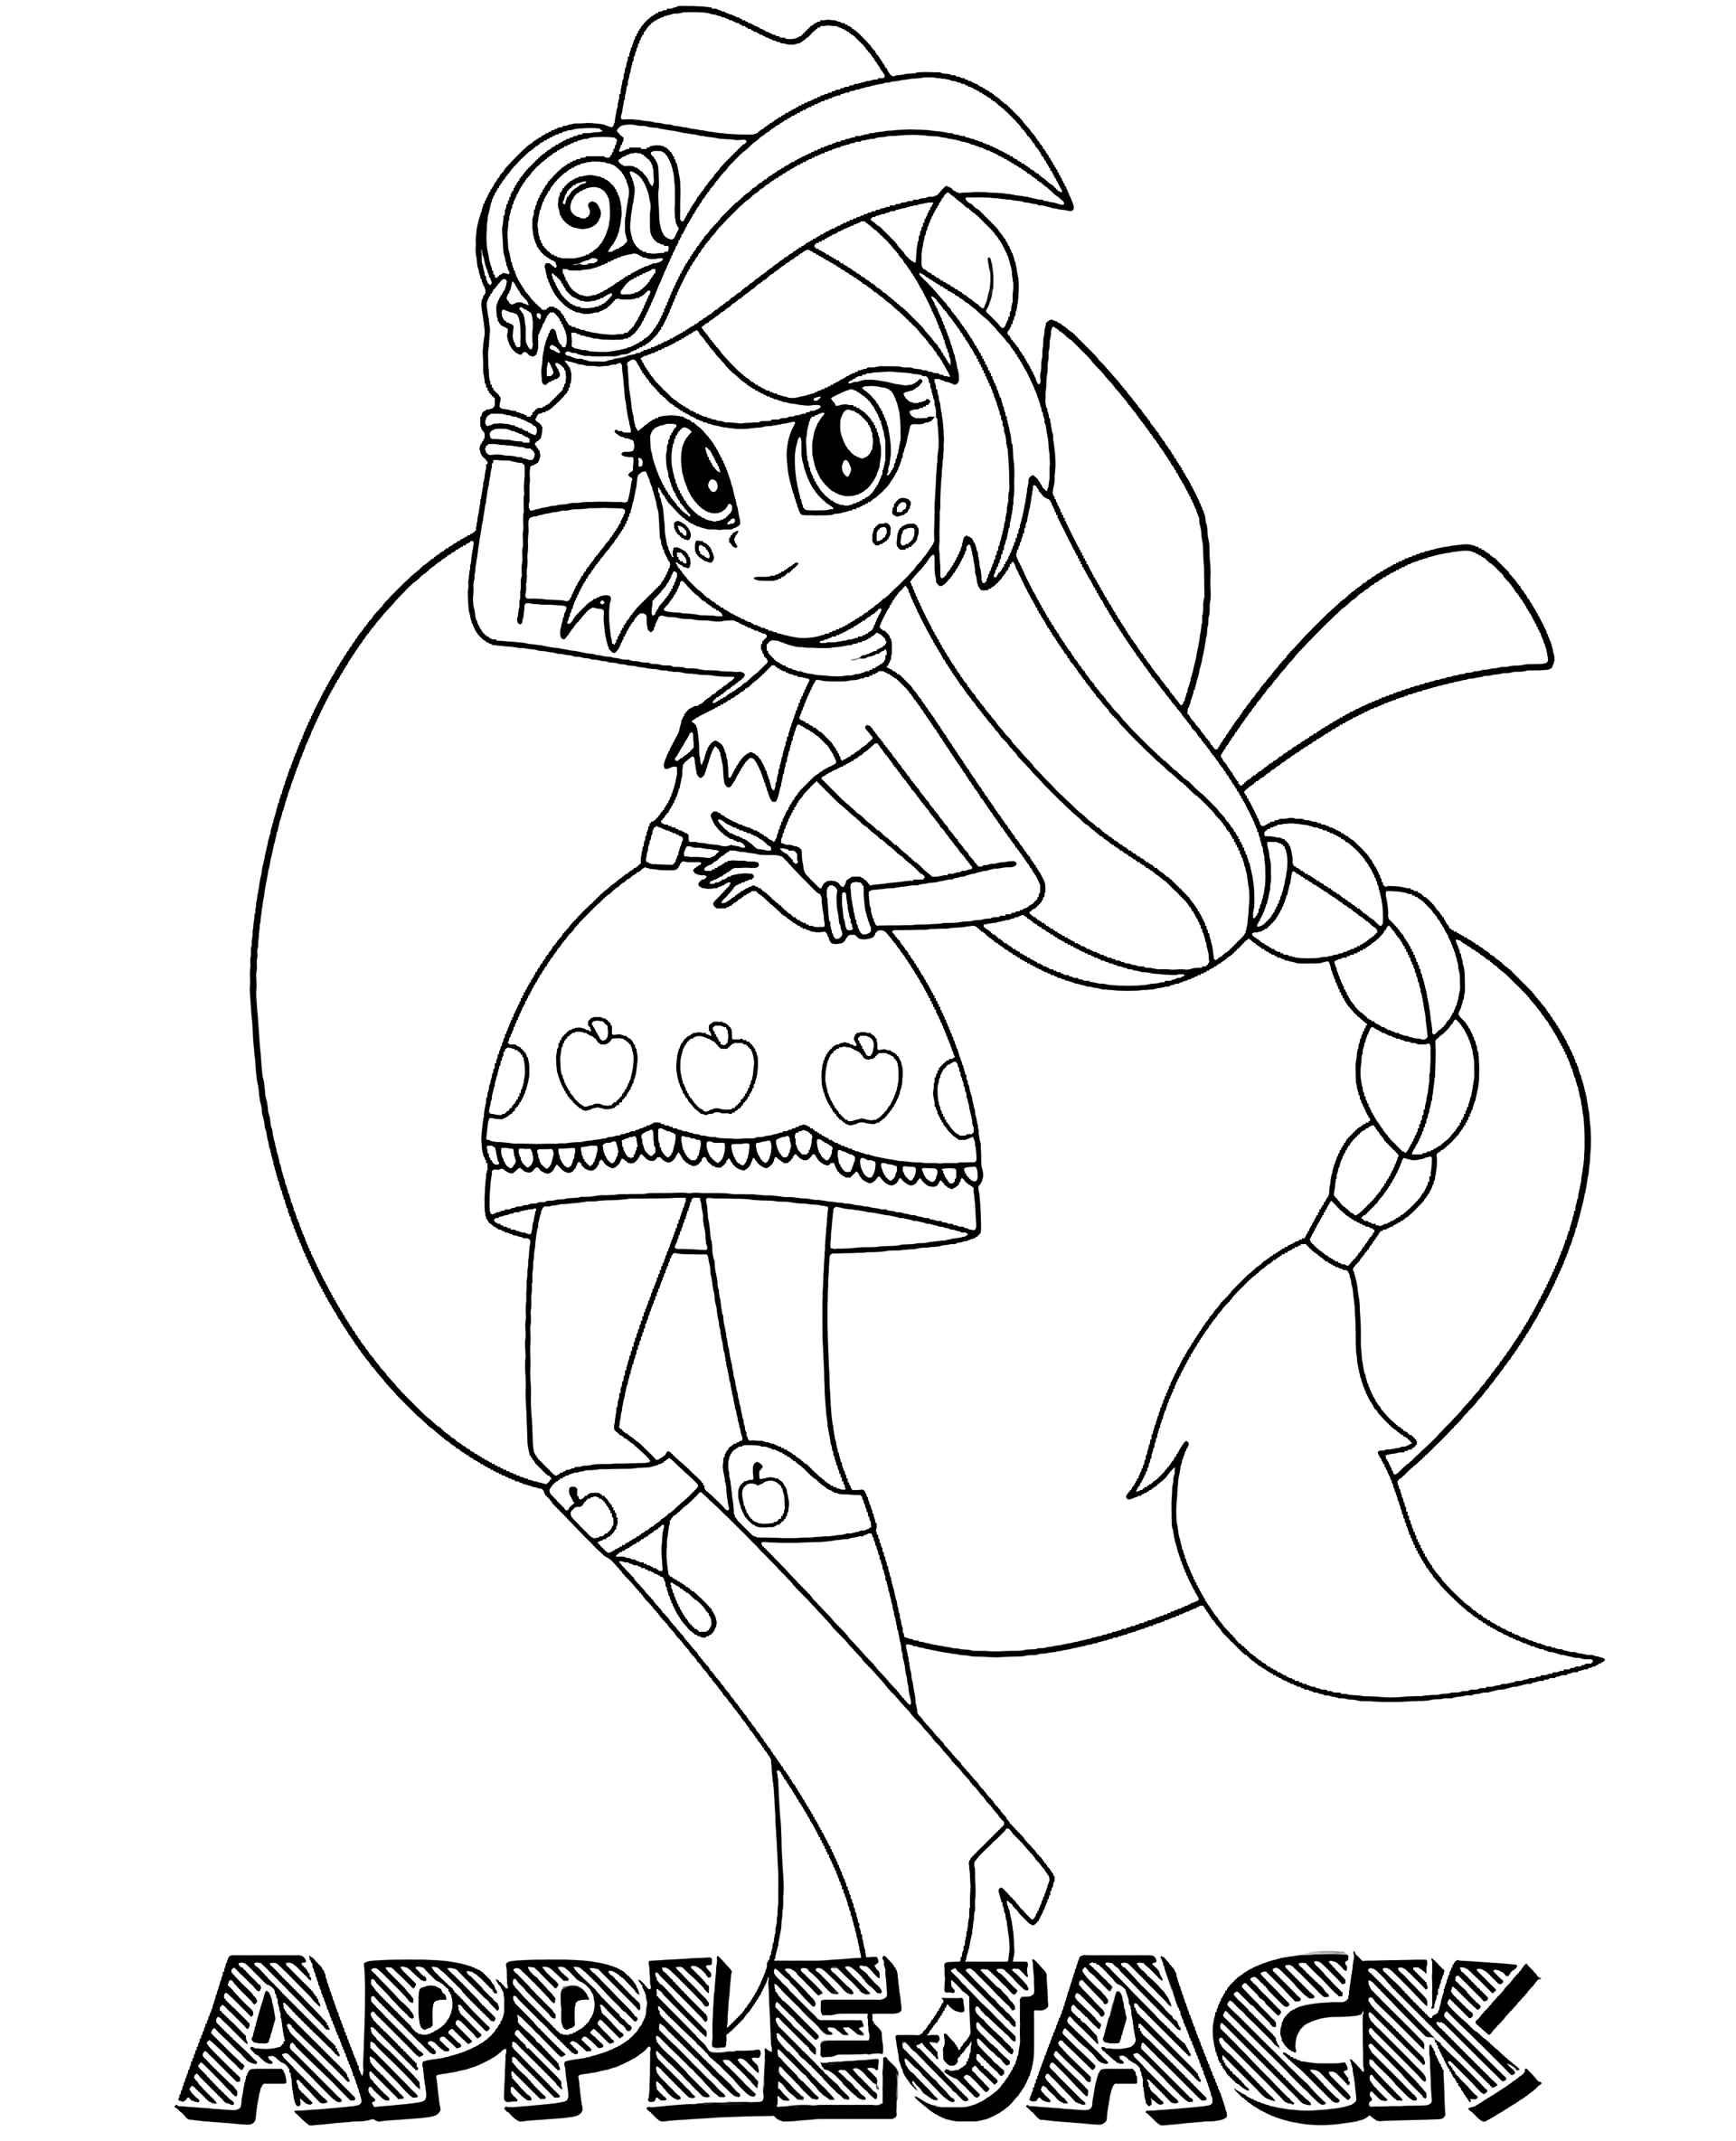 Applejack Girl In A Cowboy Outfit With A Name Coloring Pages